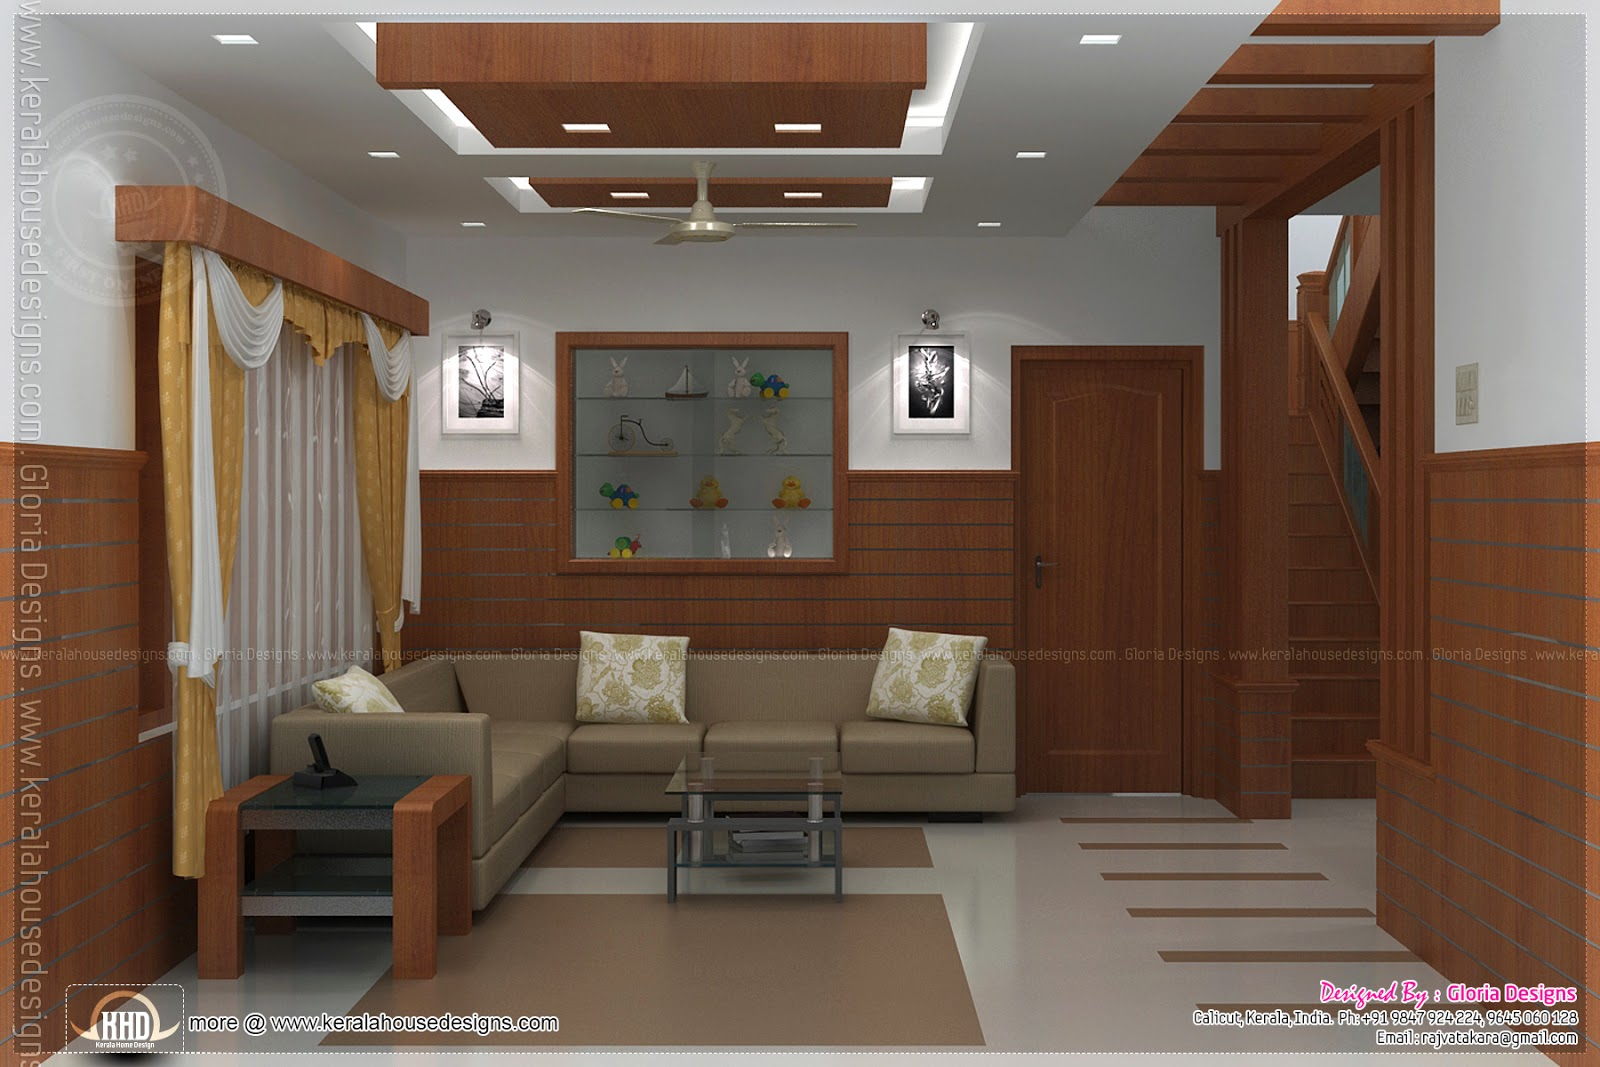 Interior house design ideas home interior design ideas kerala home rh propagator us